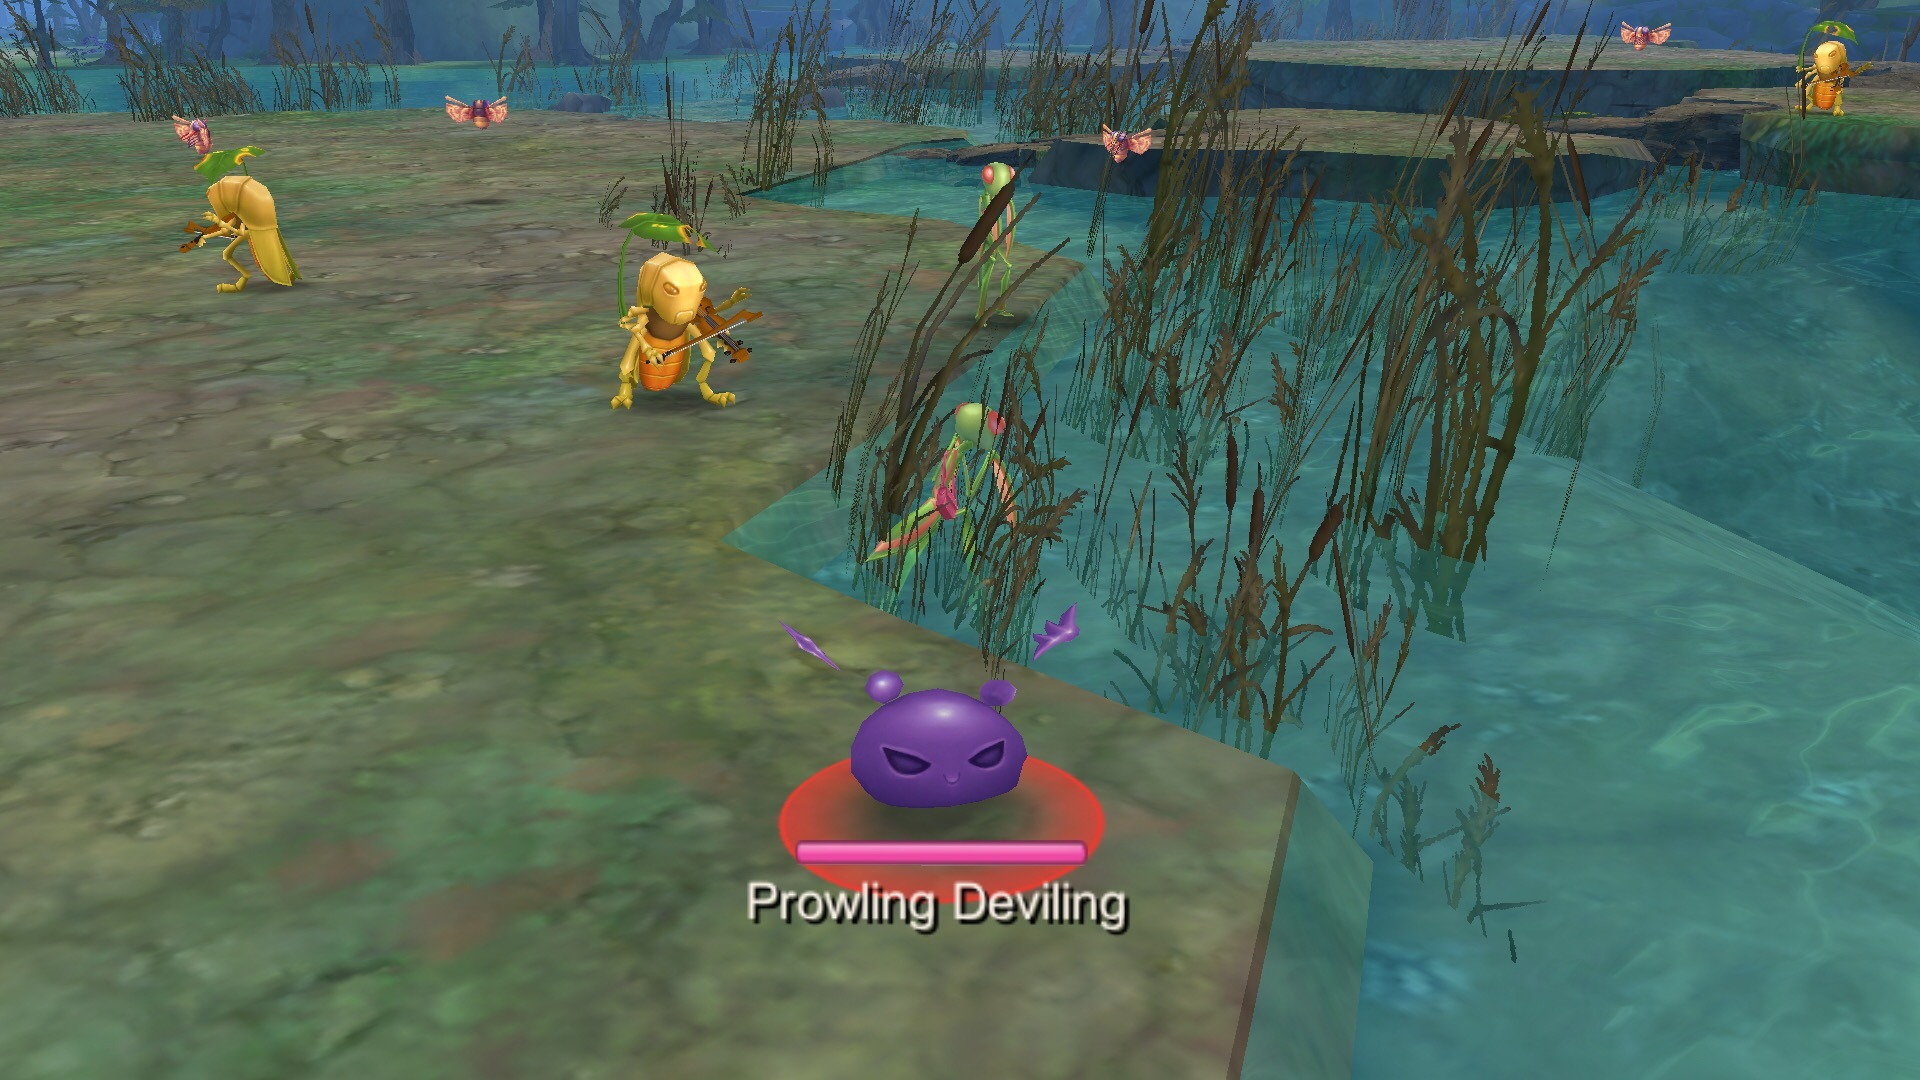 Where is Prowling Deviling in North Prontera using Ghost Camera 2